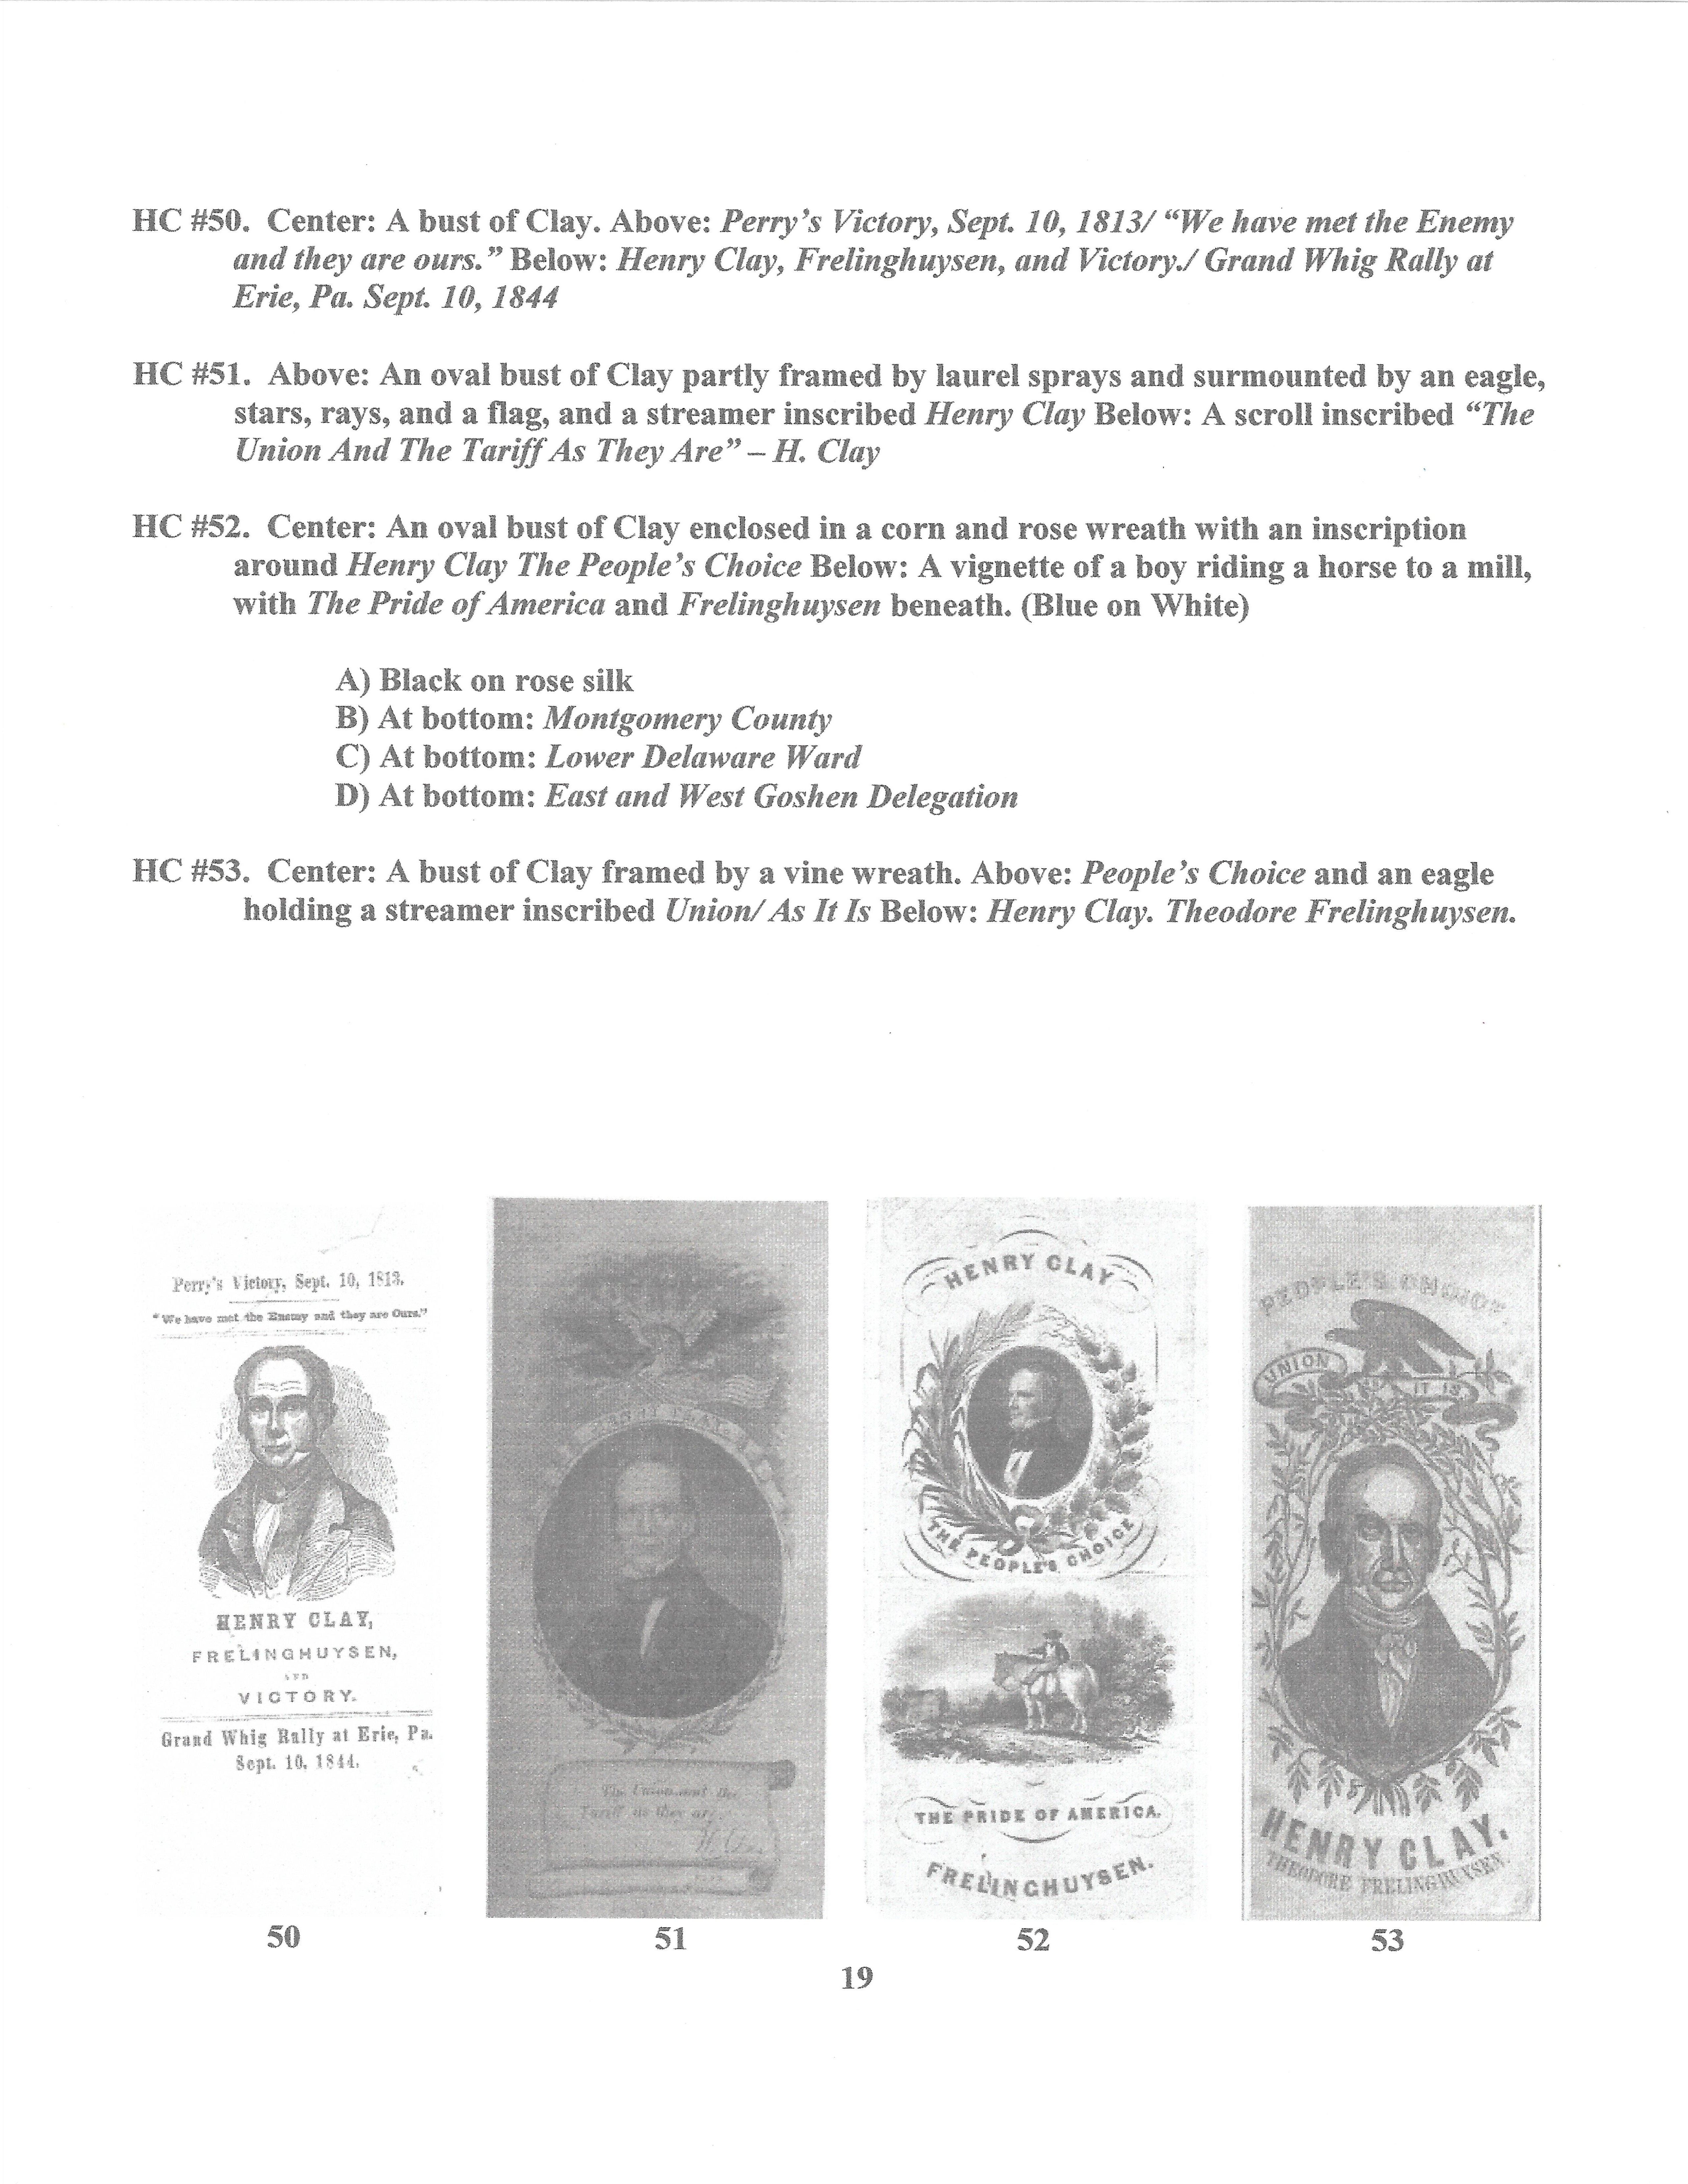 Henry Clay Ribbons on page title,